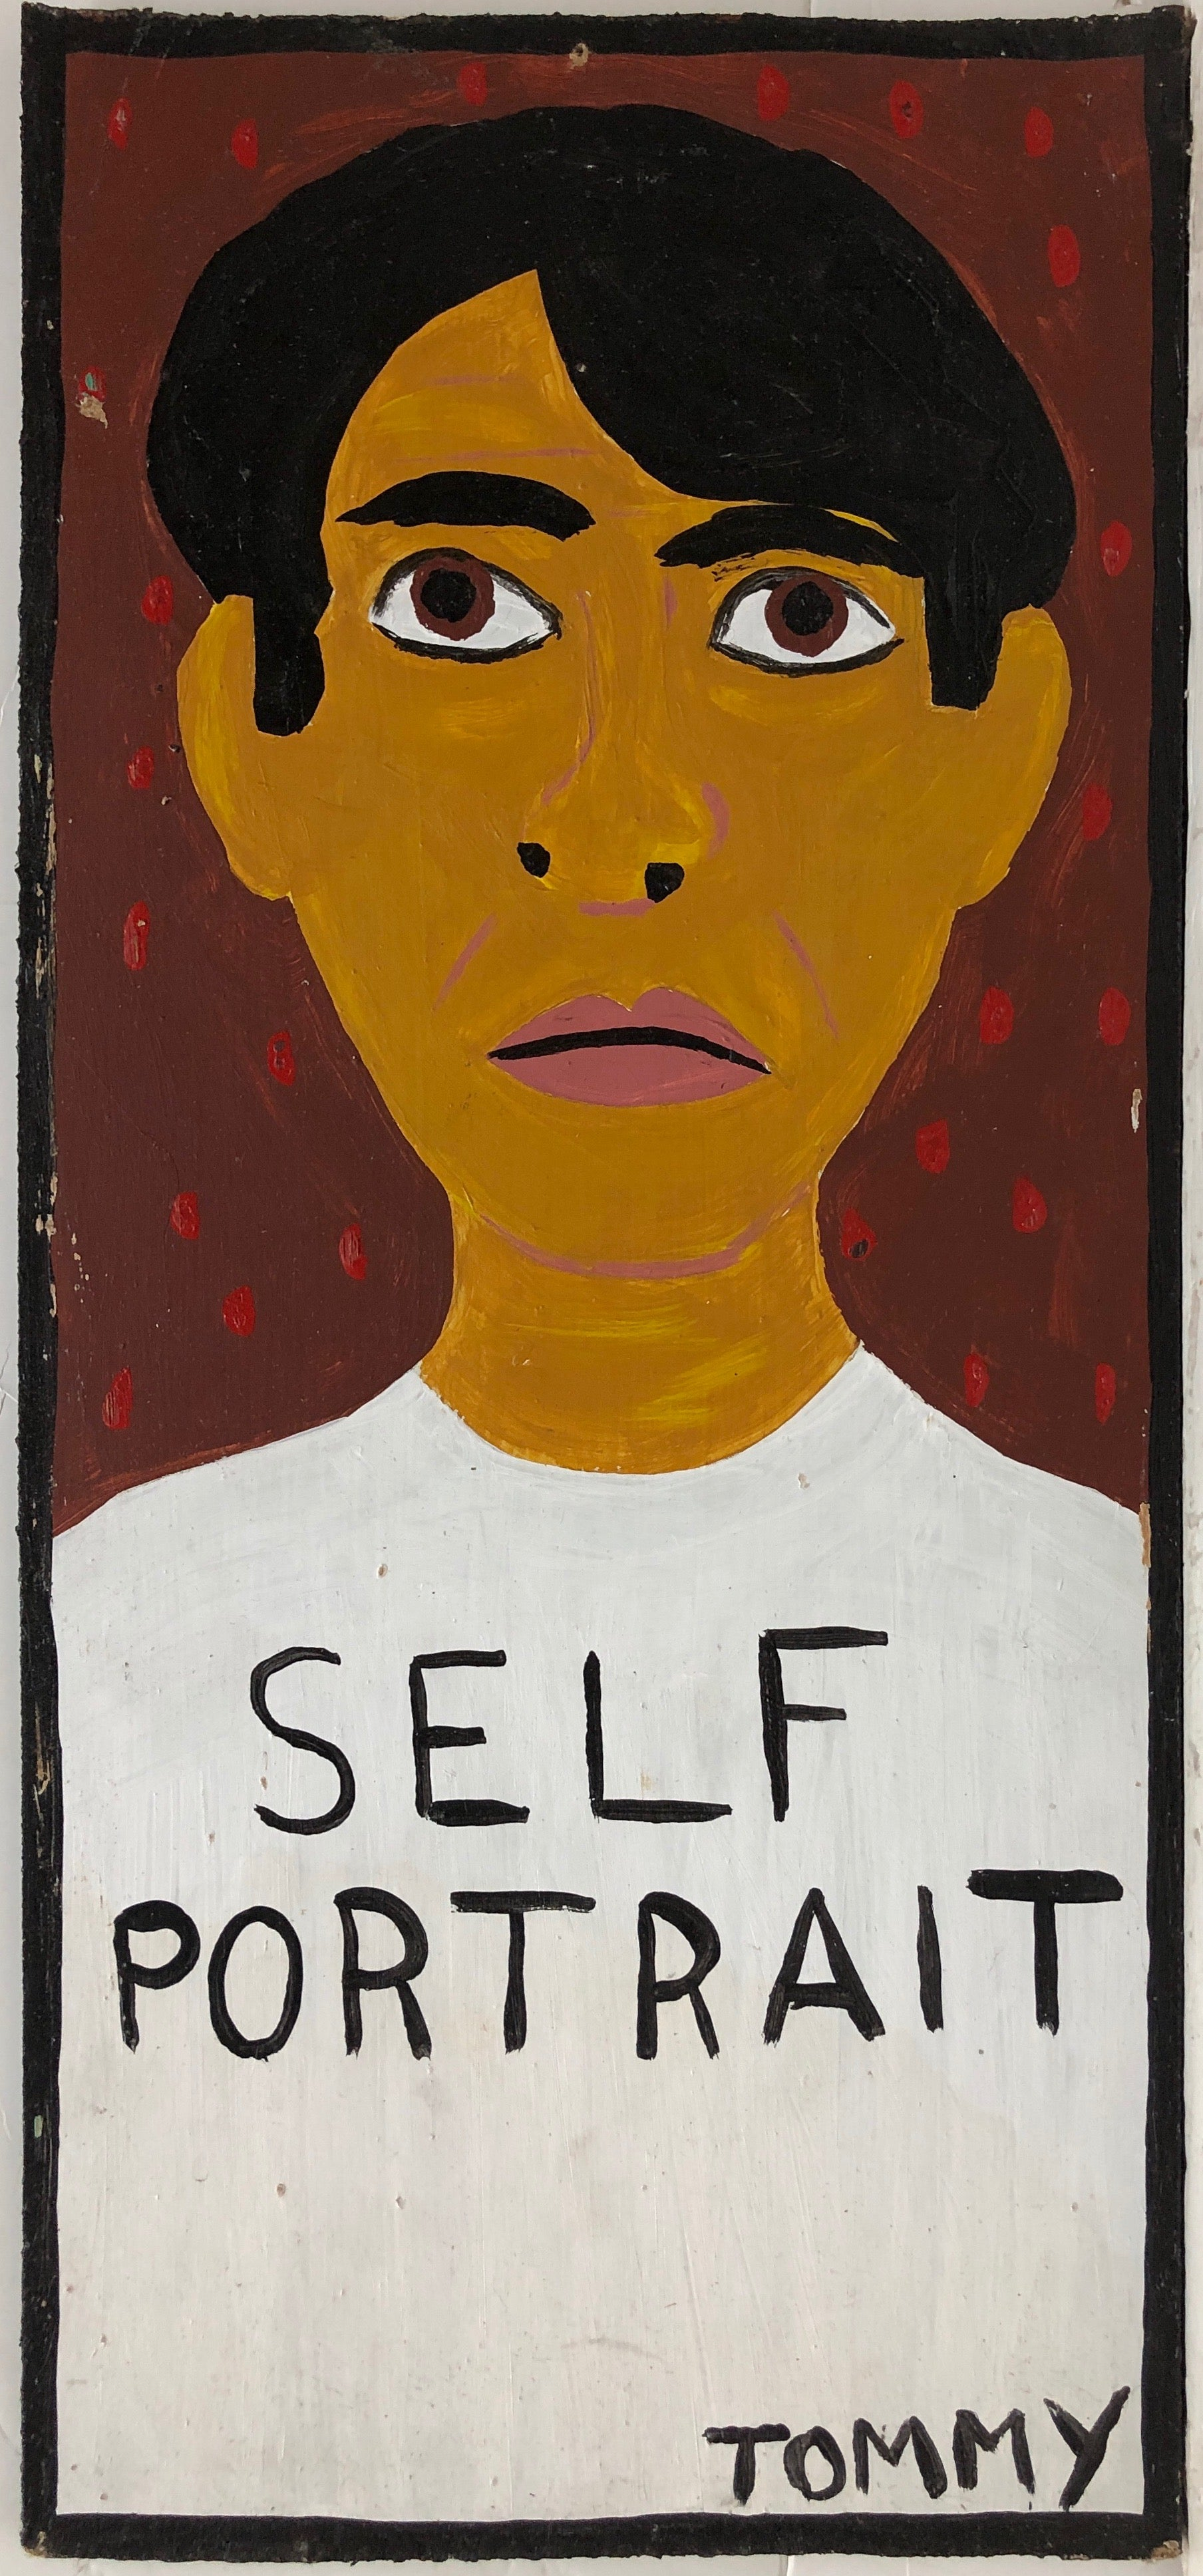 Self-portrait of the Artist Tommy Cheng, labeled as such in black lettering.